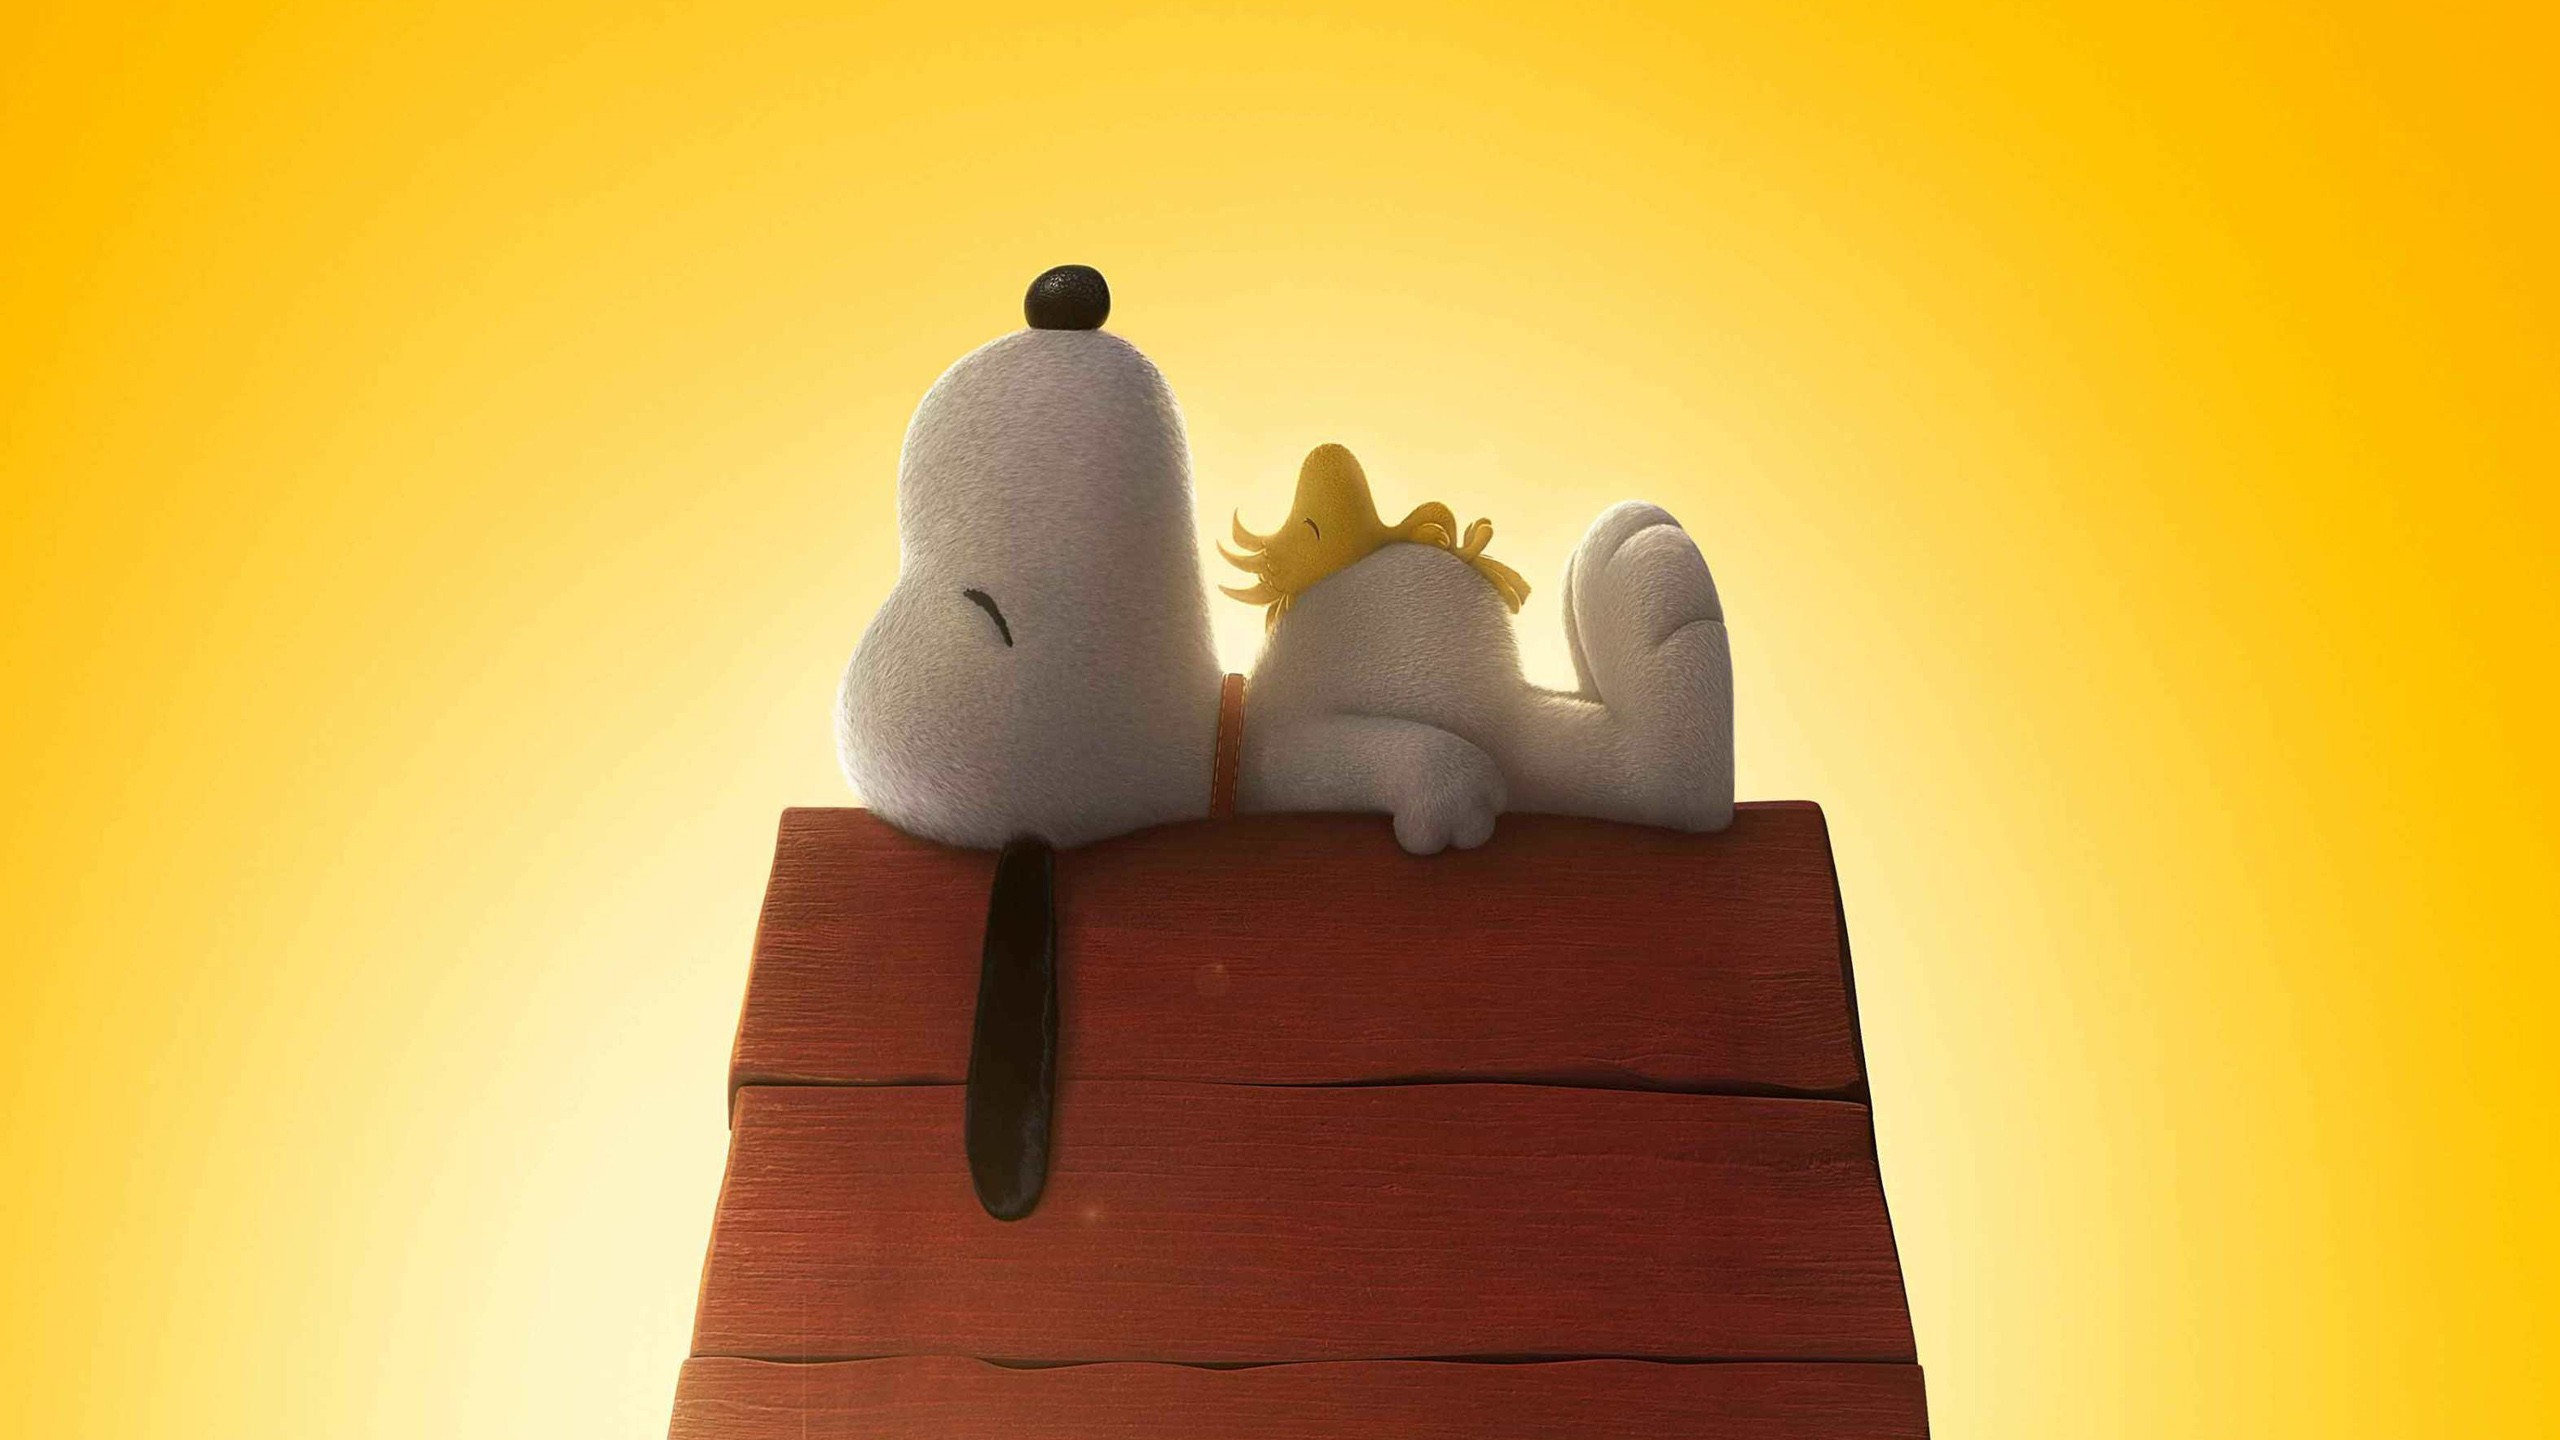 Creative Wallpapers For Iphone X Peanuts 2015 Movie Wallpapers Hd Wallpapers Id 14134